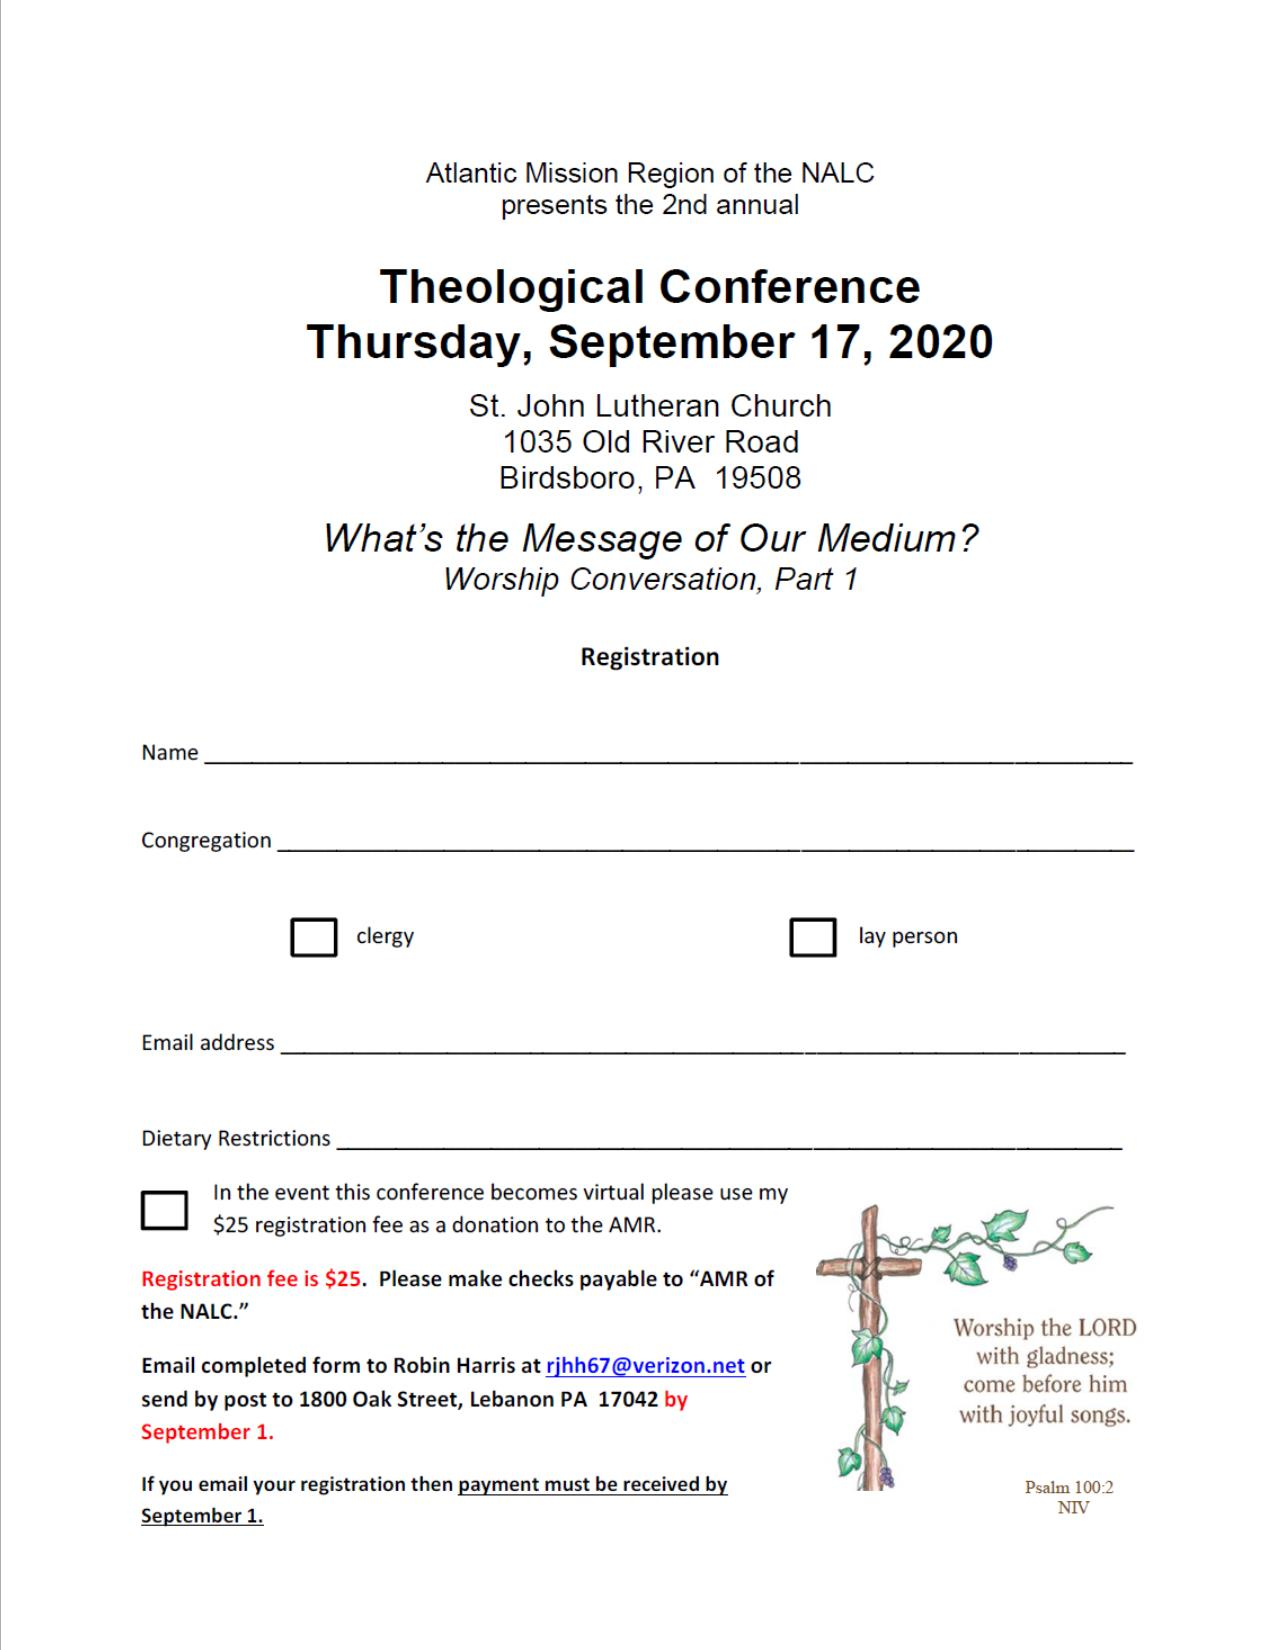 Theological Conference Registration